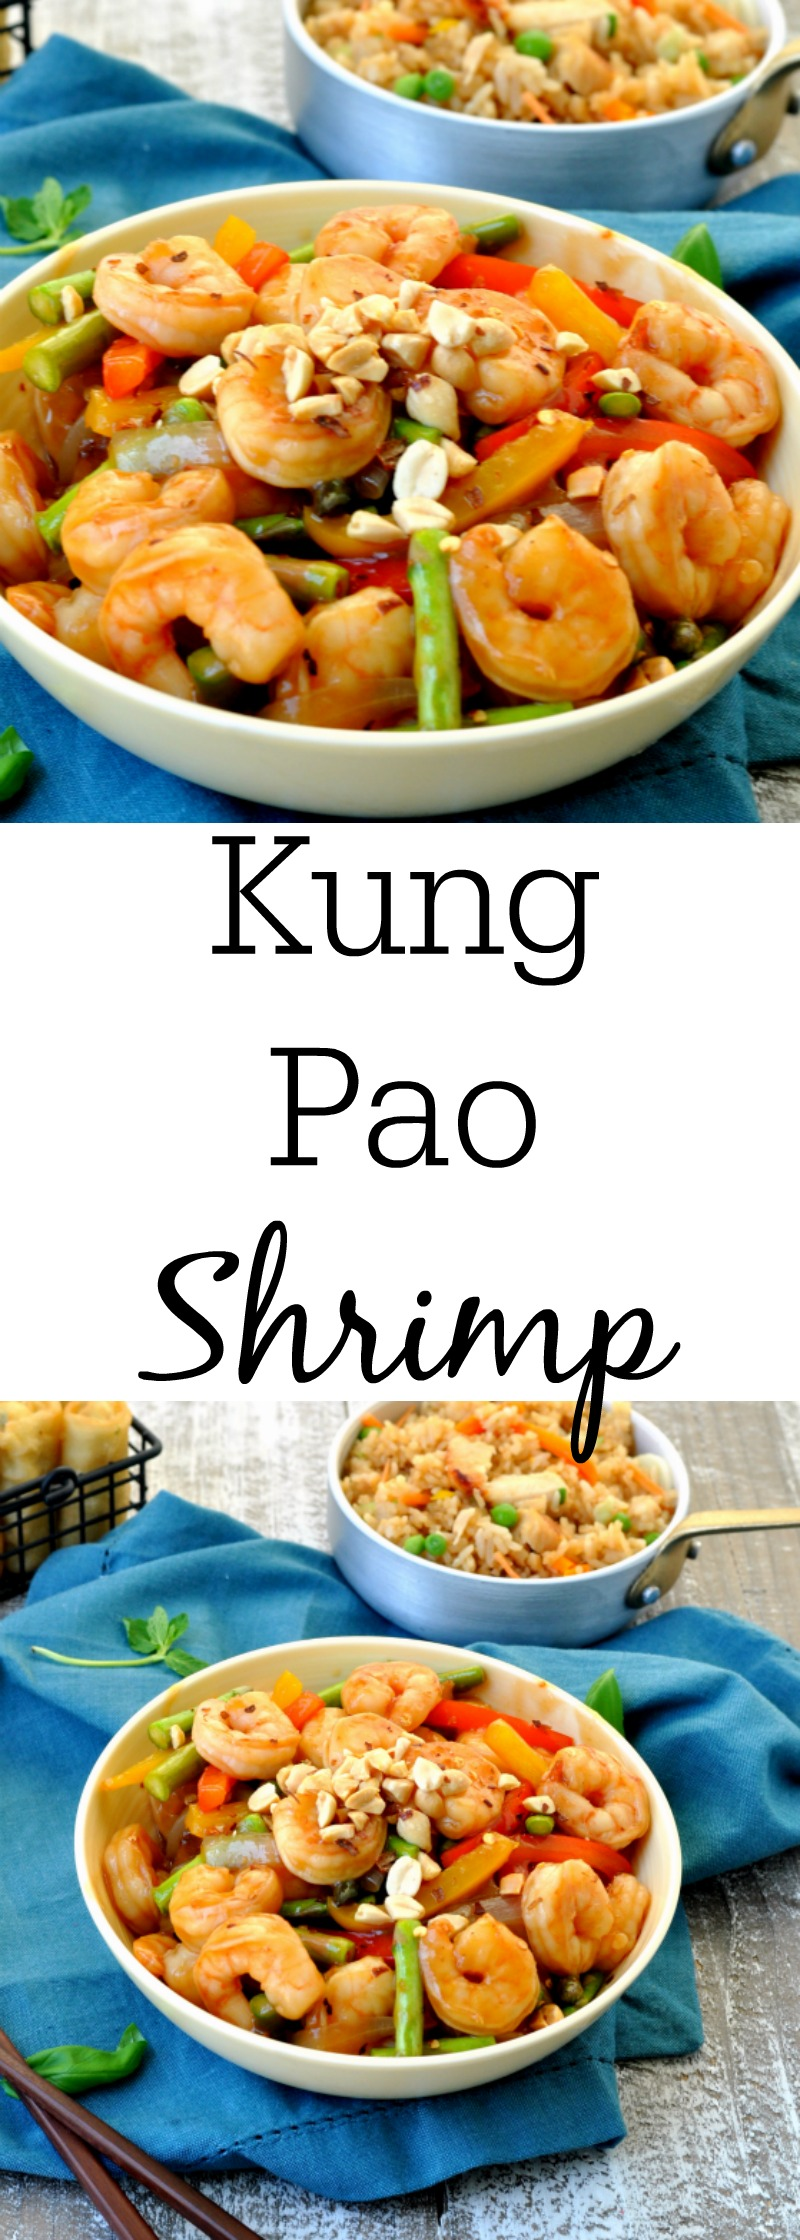 Easy Kung Pao Shrimp